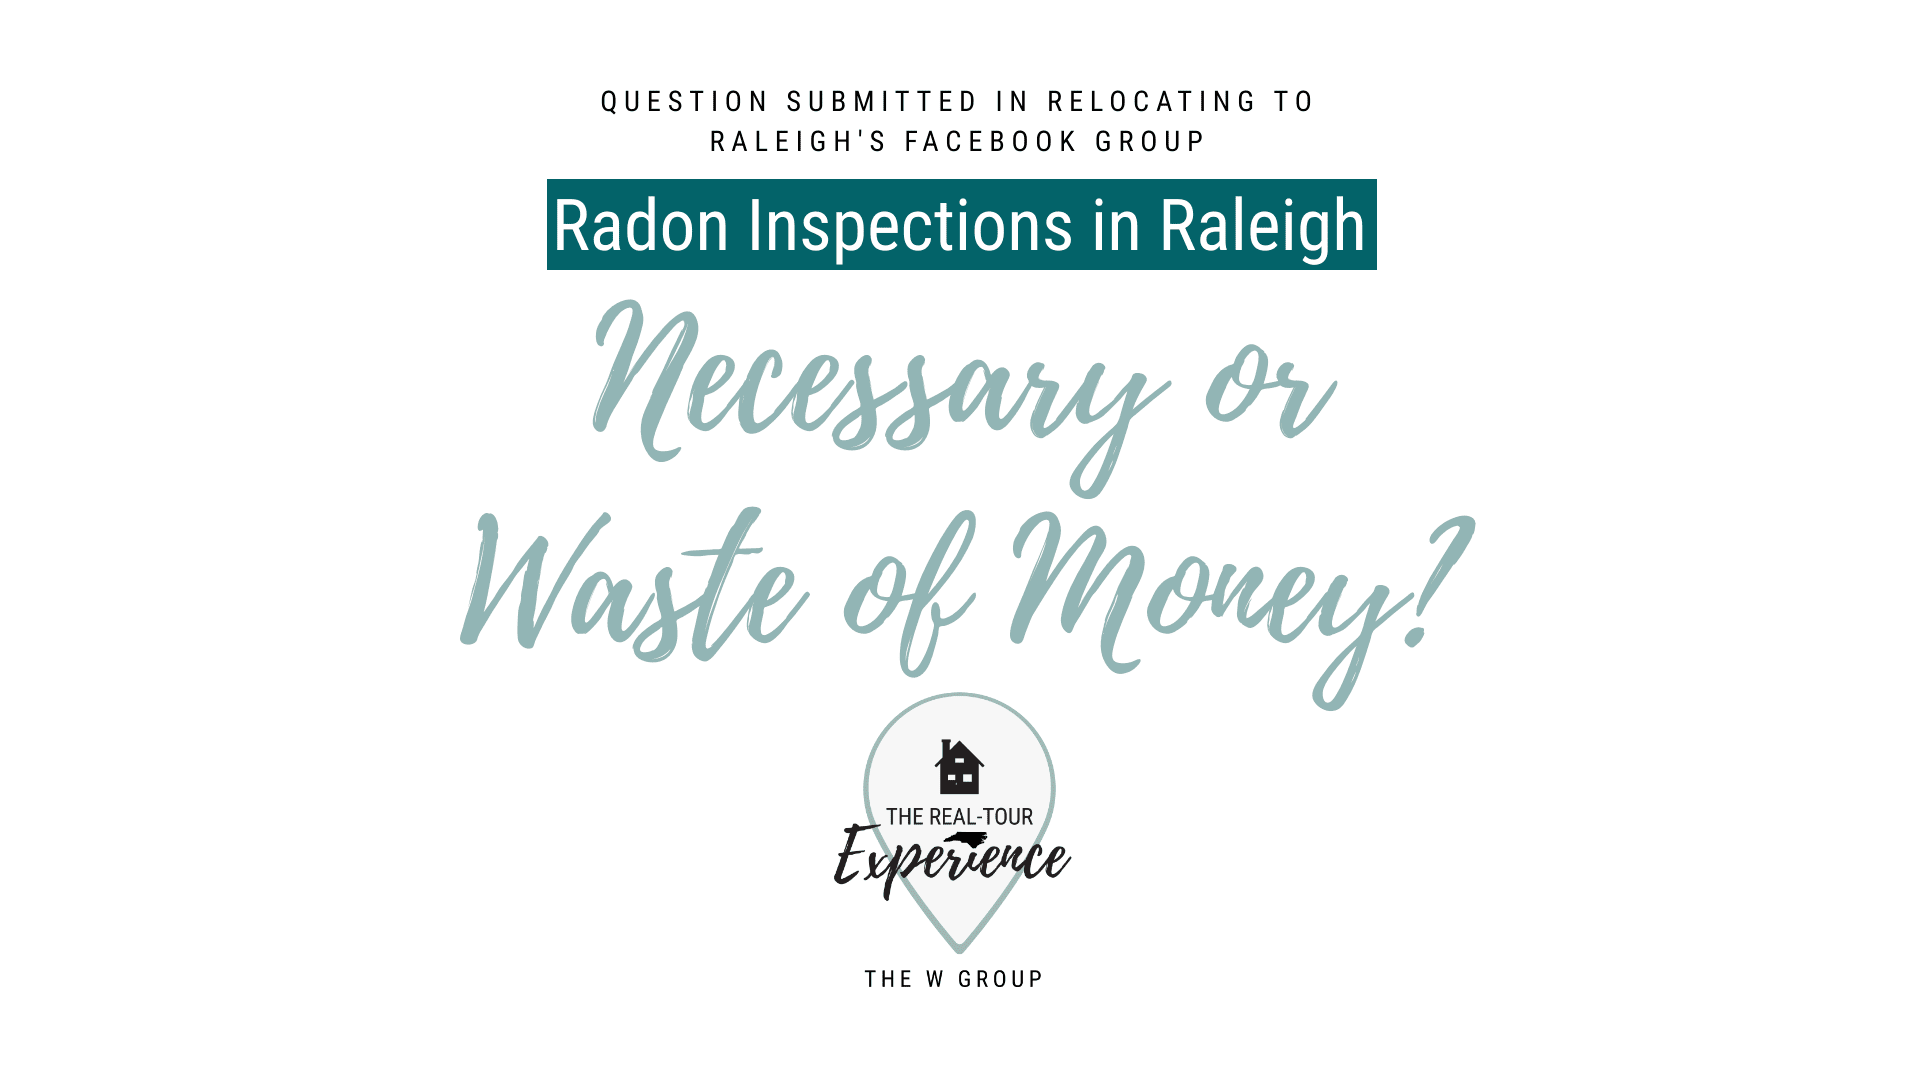 Radon Inspections | Real-Tour Experience